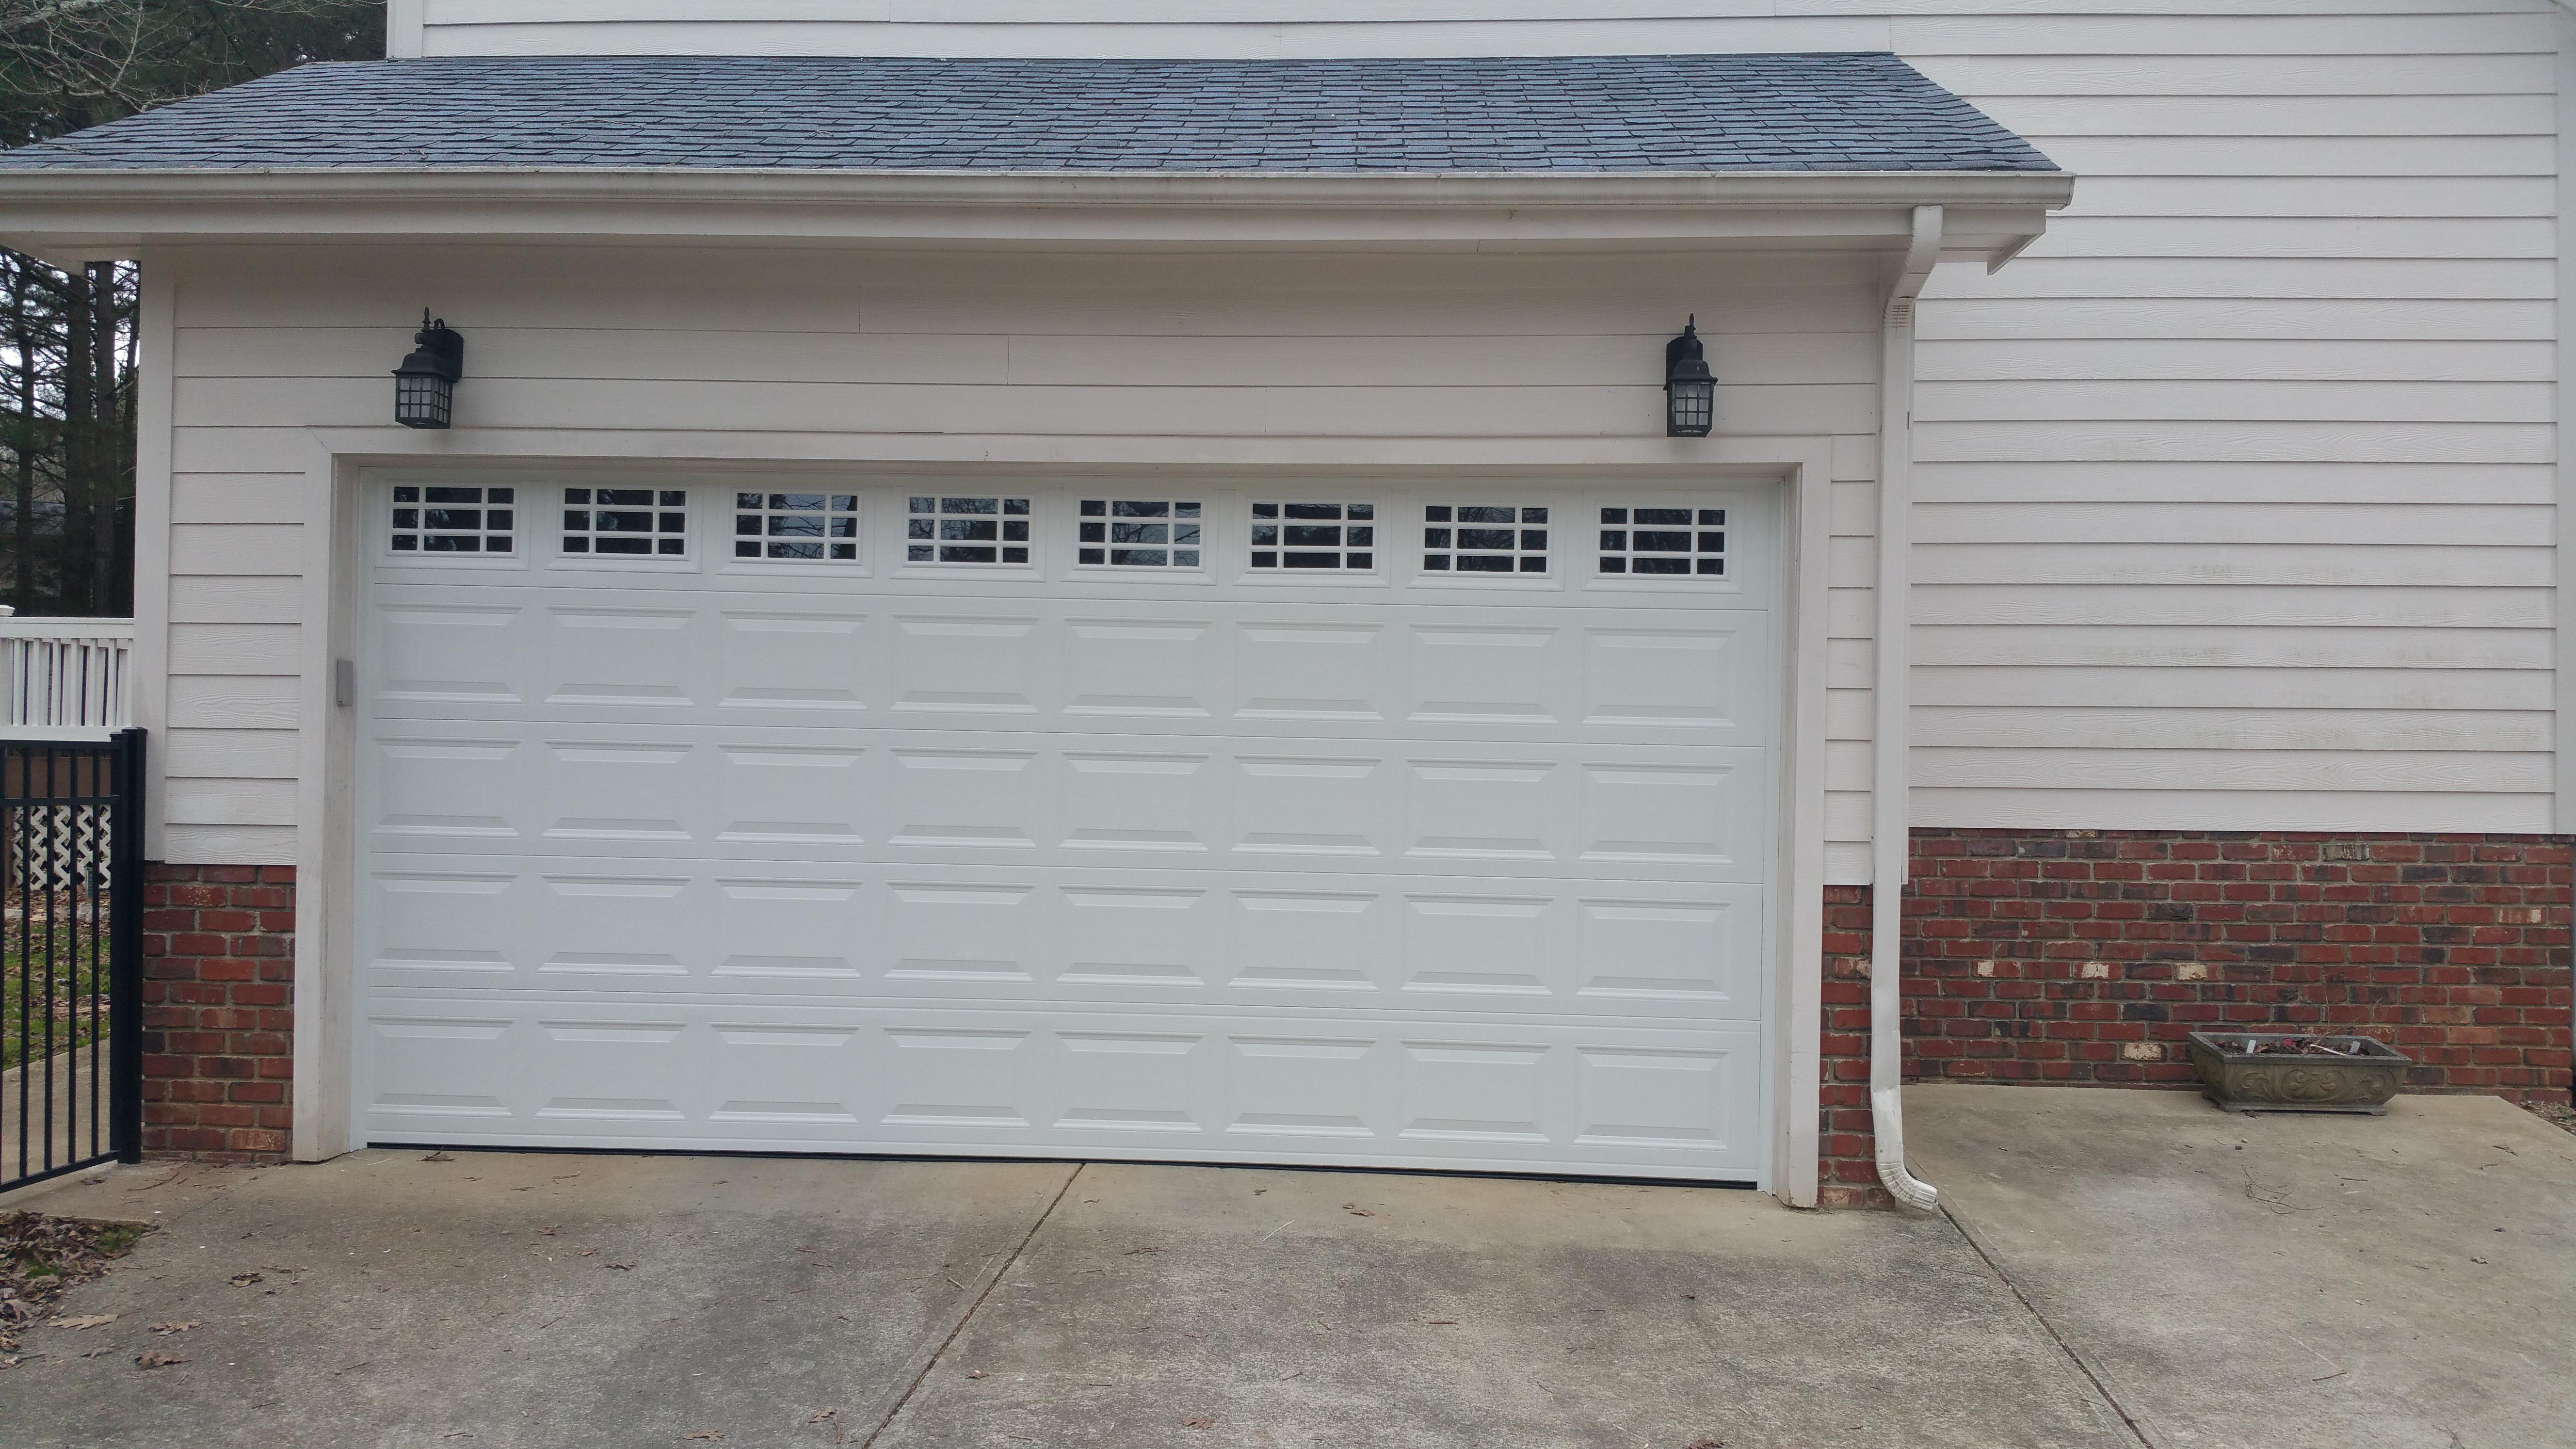 All American Overhead Garage Door, Inc In Wendell, Nc. Home Depot Garage. Door Window Film. Tall Bookcase With Doors. Garage Door Opener Indianapolis. Rv Access Doors. Pocket Doors With Glass. Garage Pergola Designs. Buy Garage Sale Signs